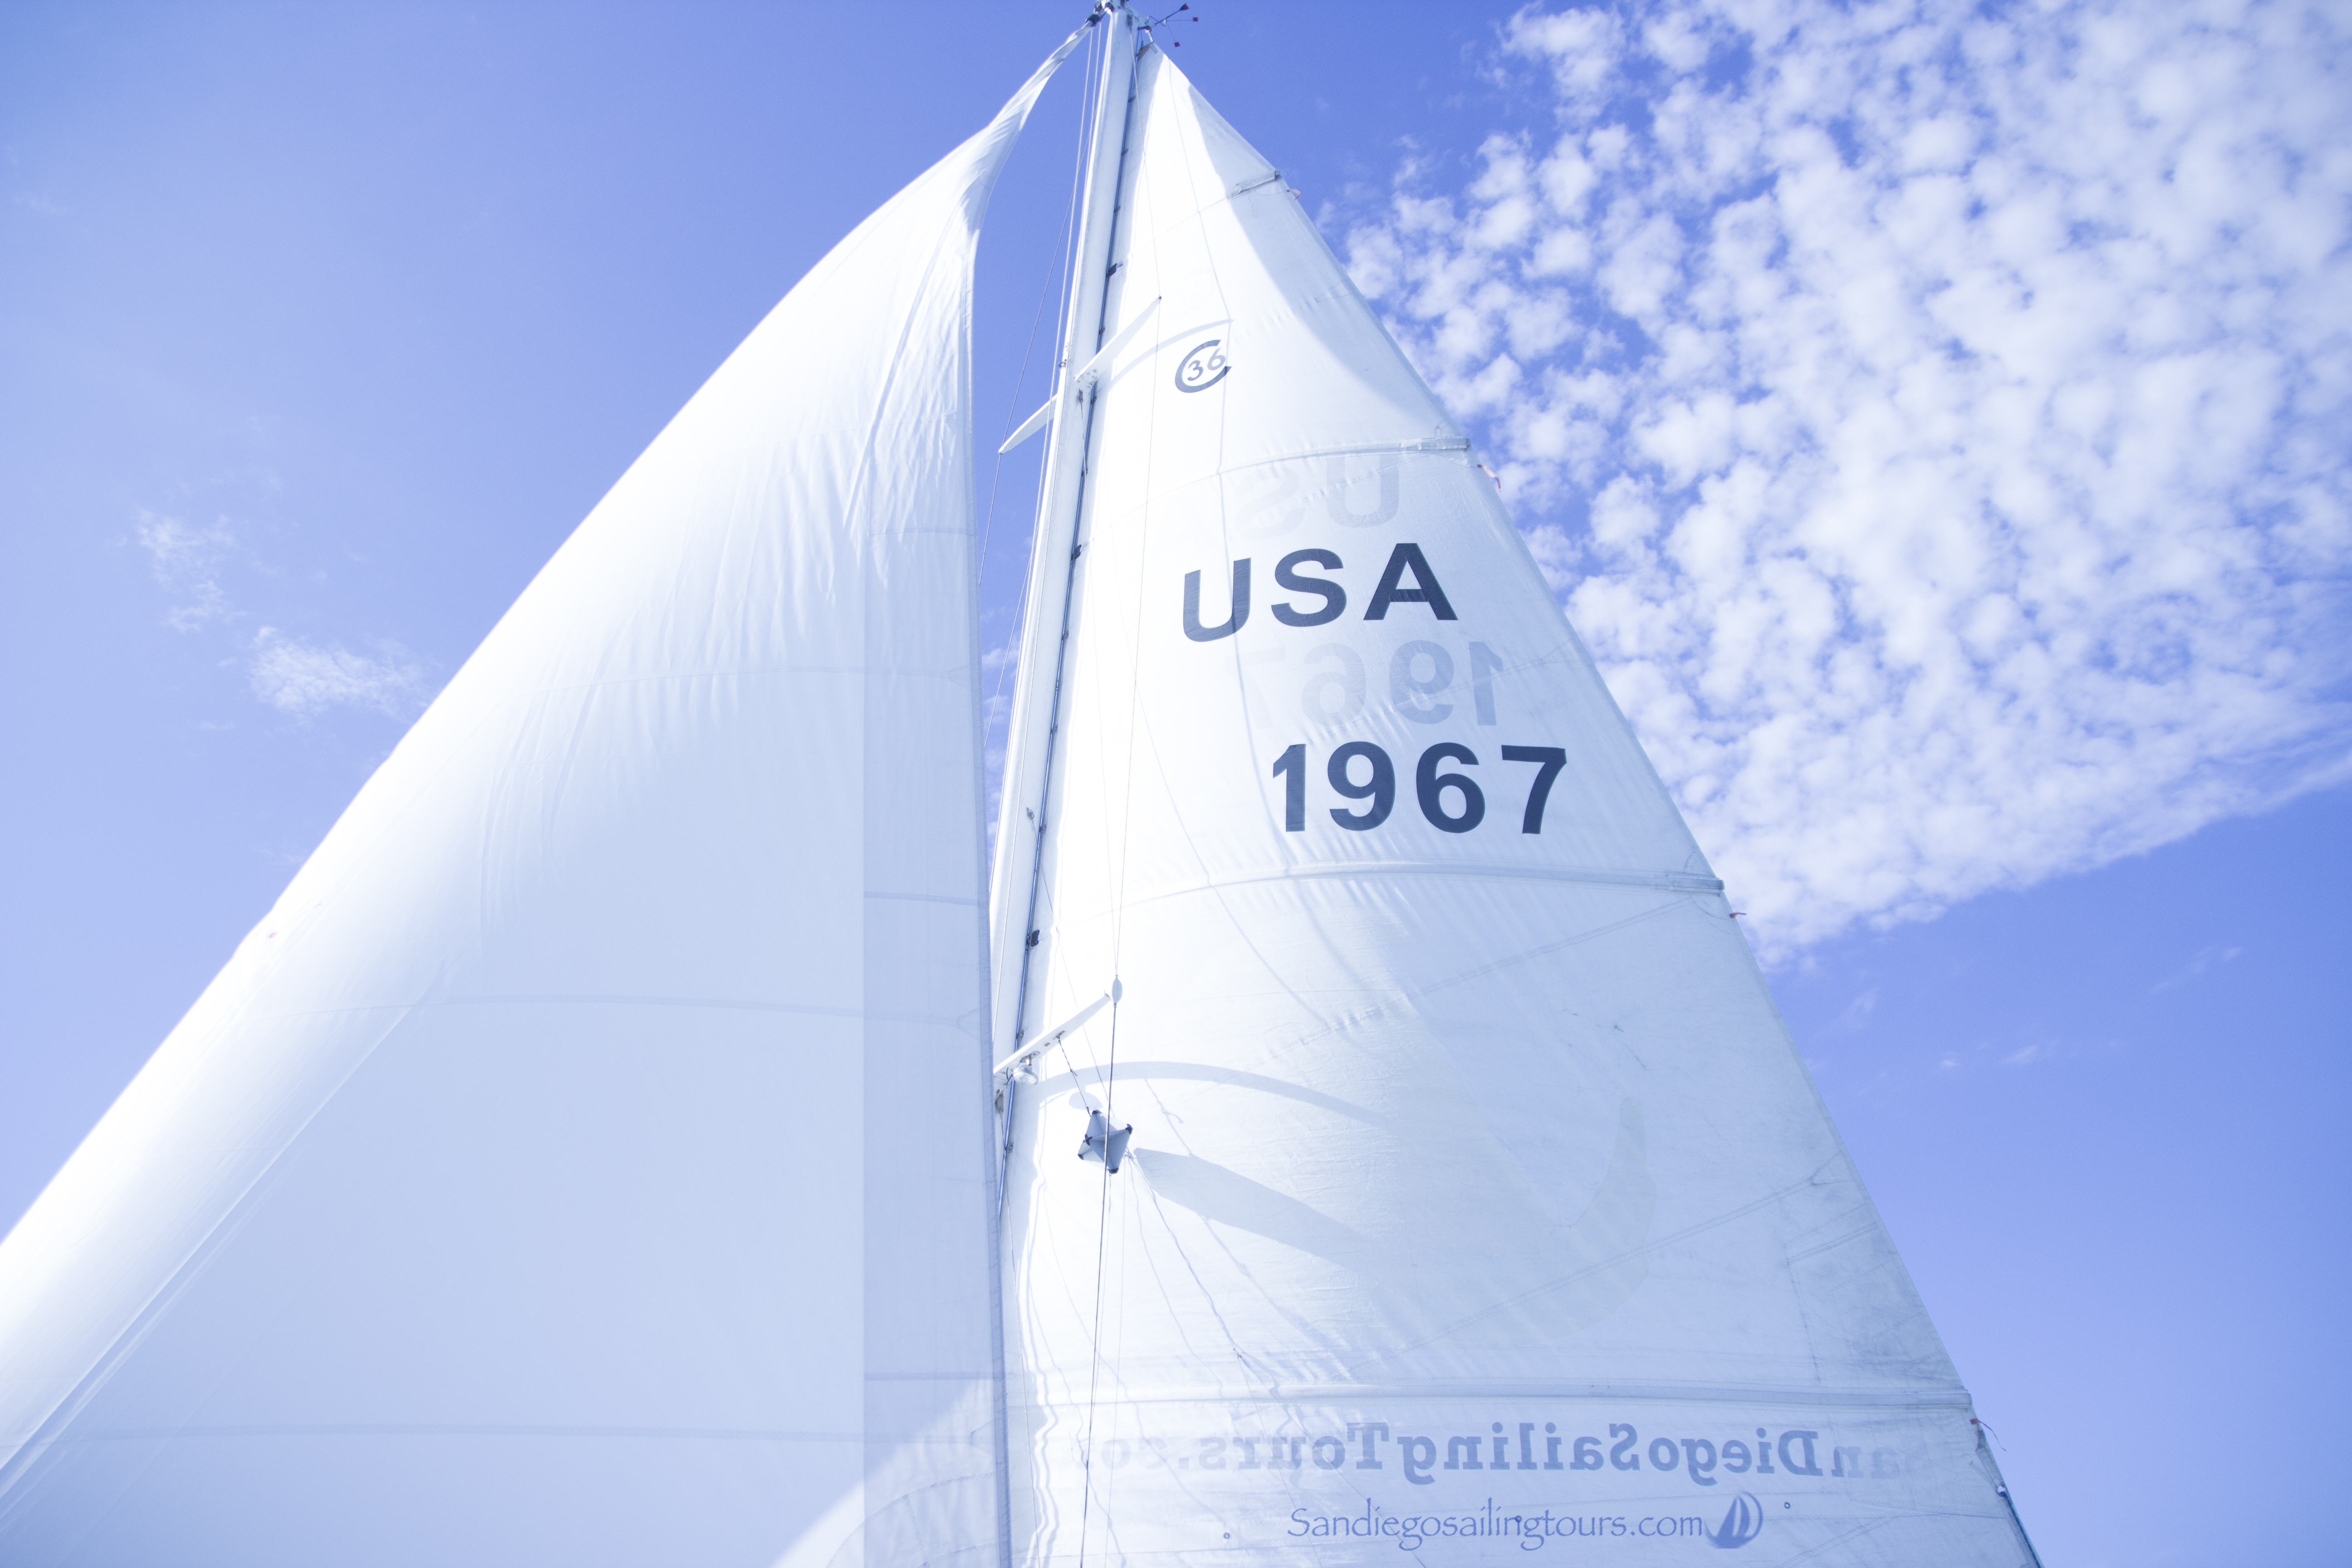 Meet Kyle Corbett of San Diego Sailing Tours and California Paddle